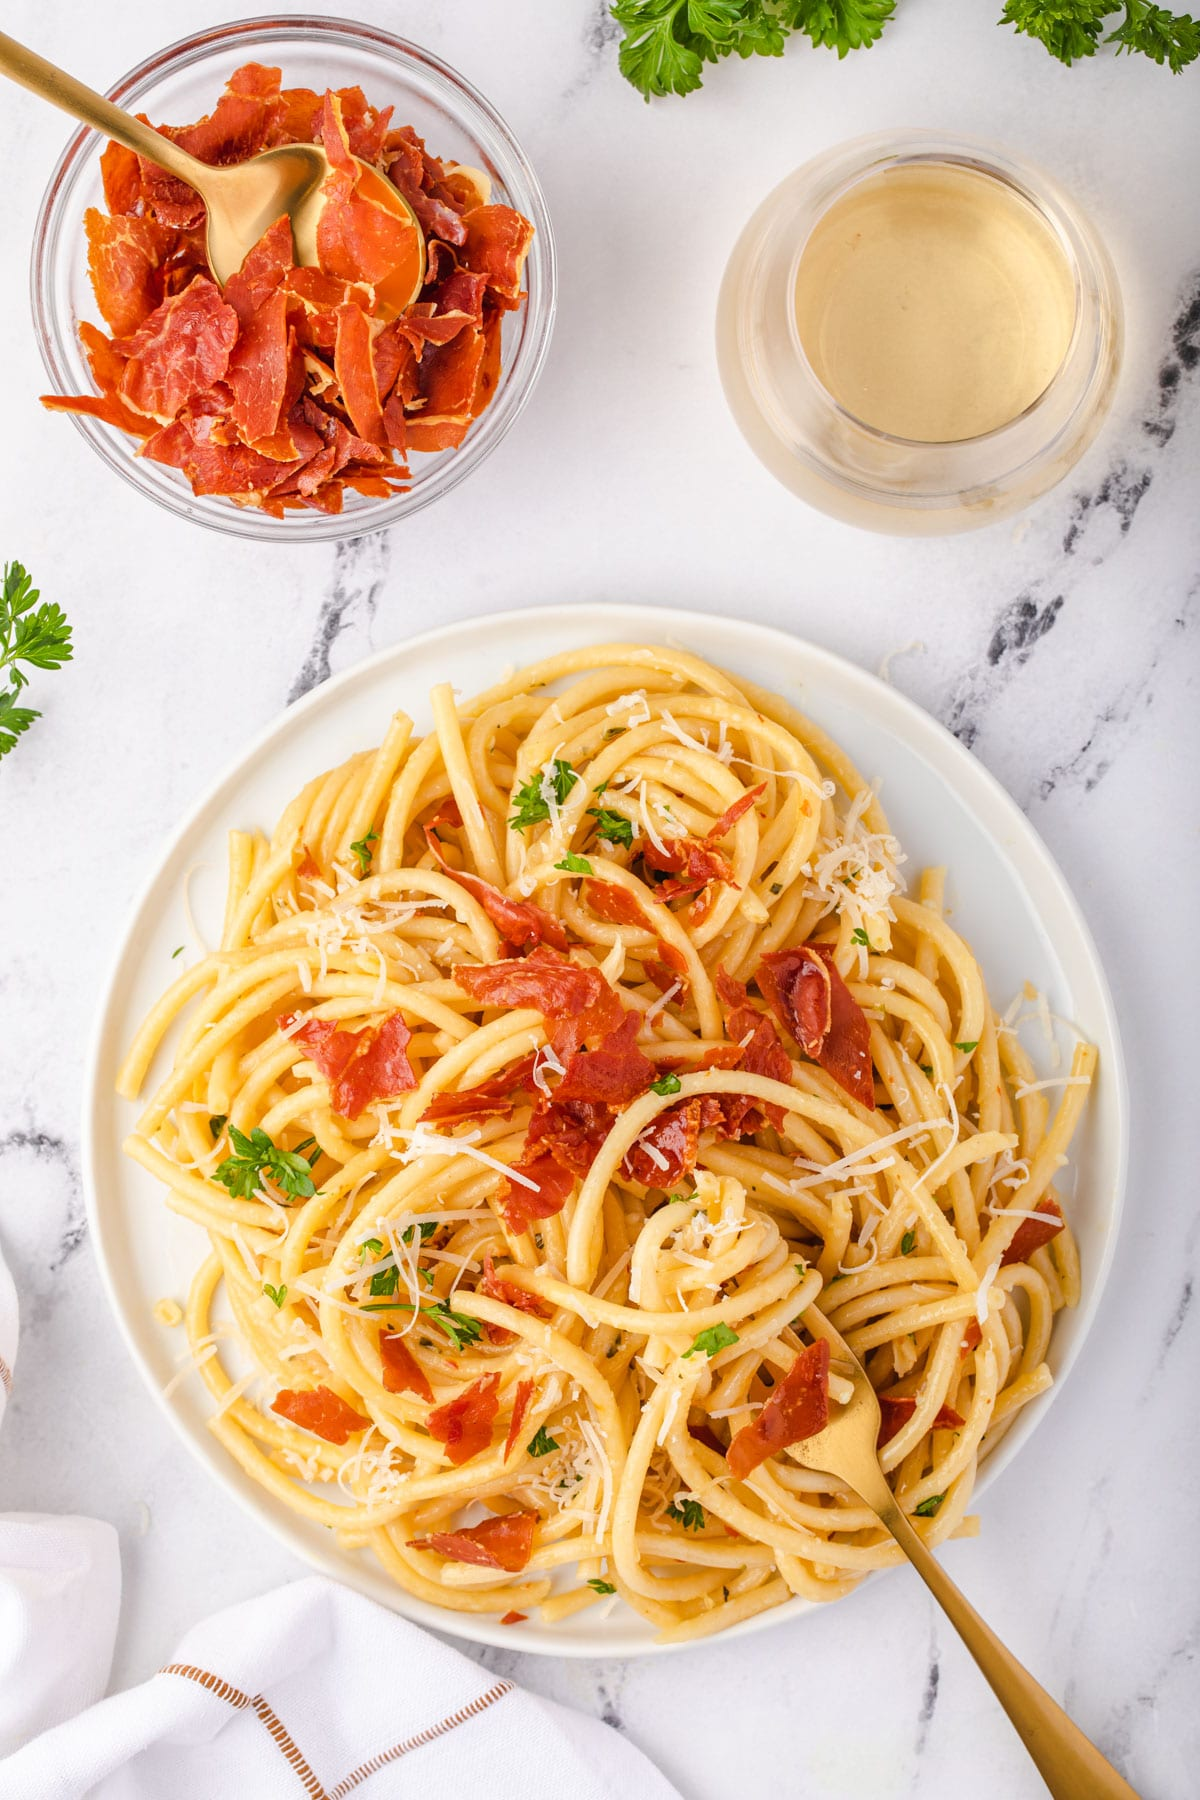 Plate of pasta in front of a bowl of crispy prosciutto and a glass of wine.